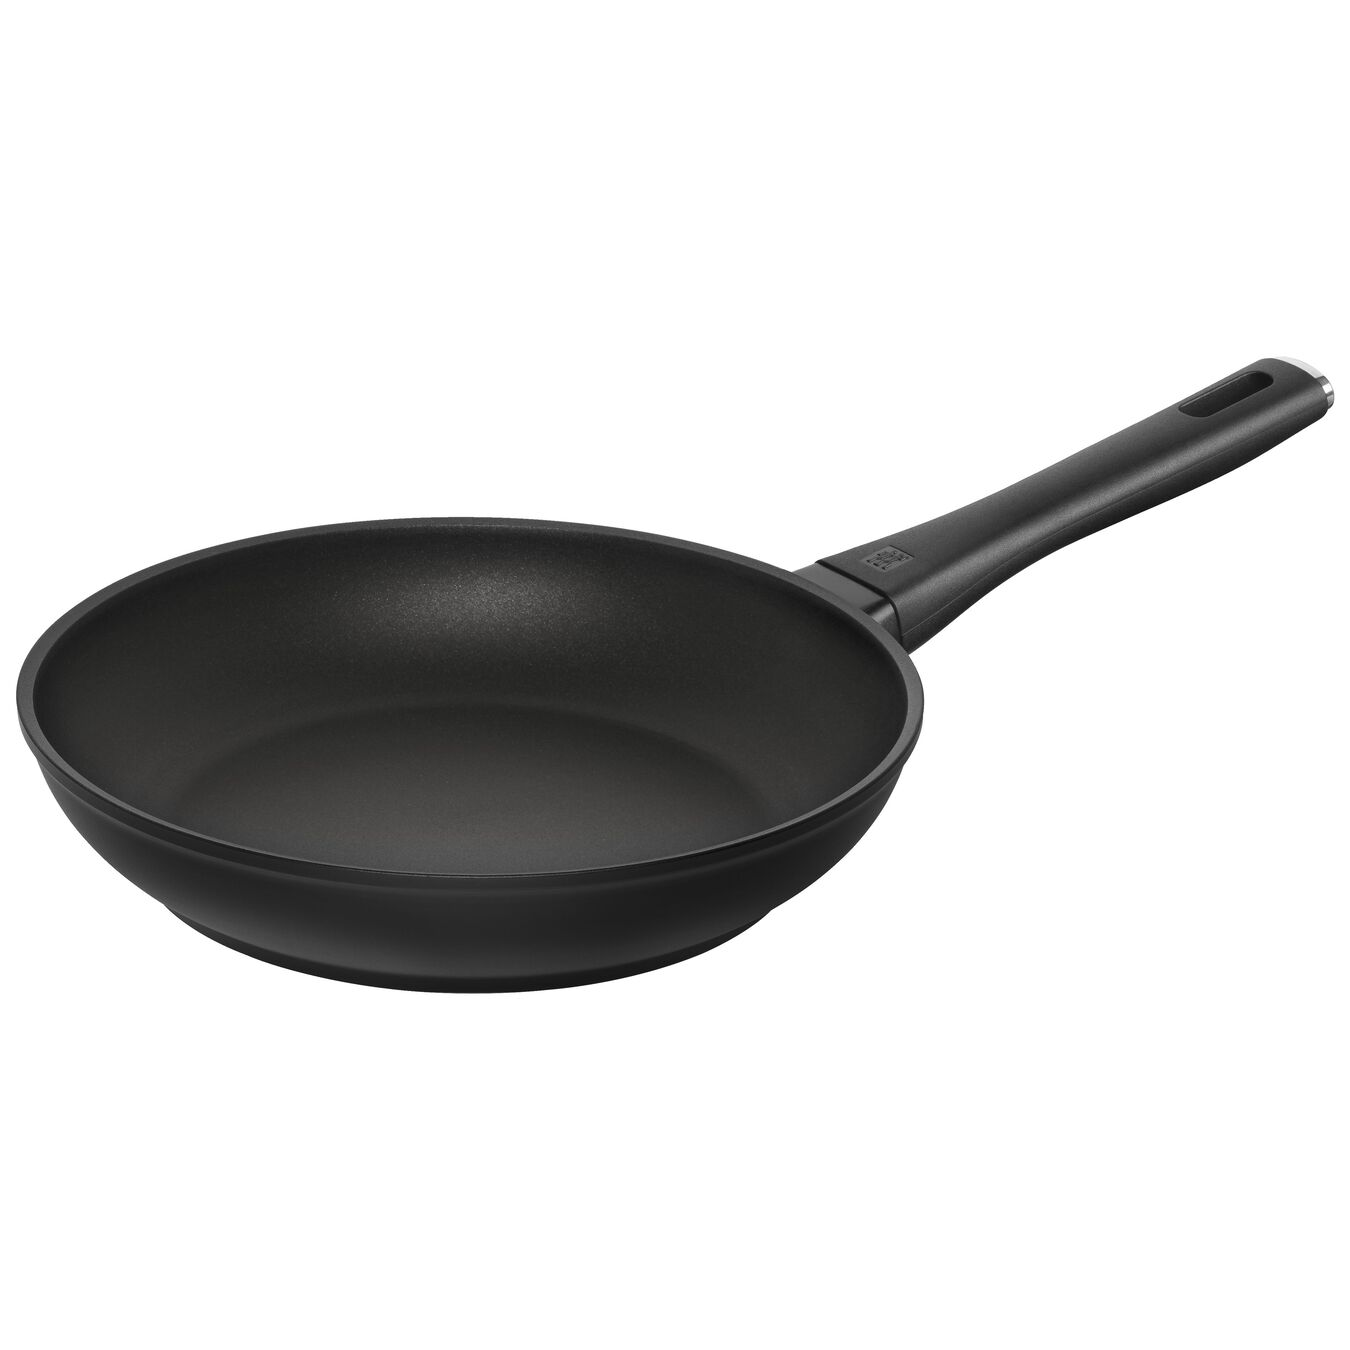 9.5-inch Nonstick Fry Pan,,large 1